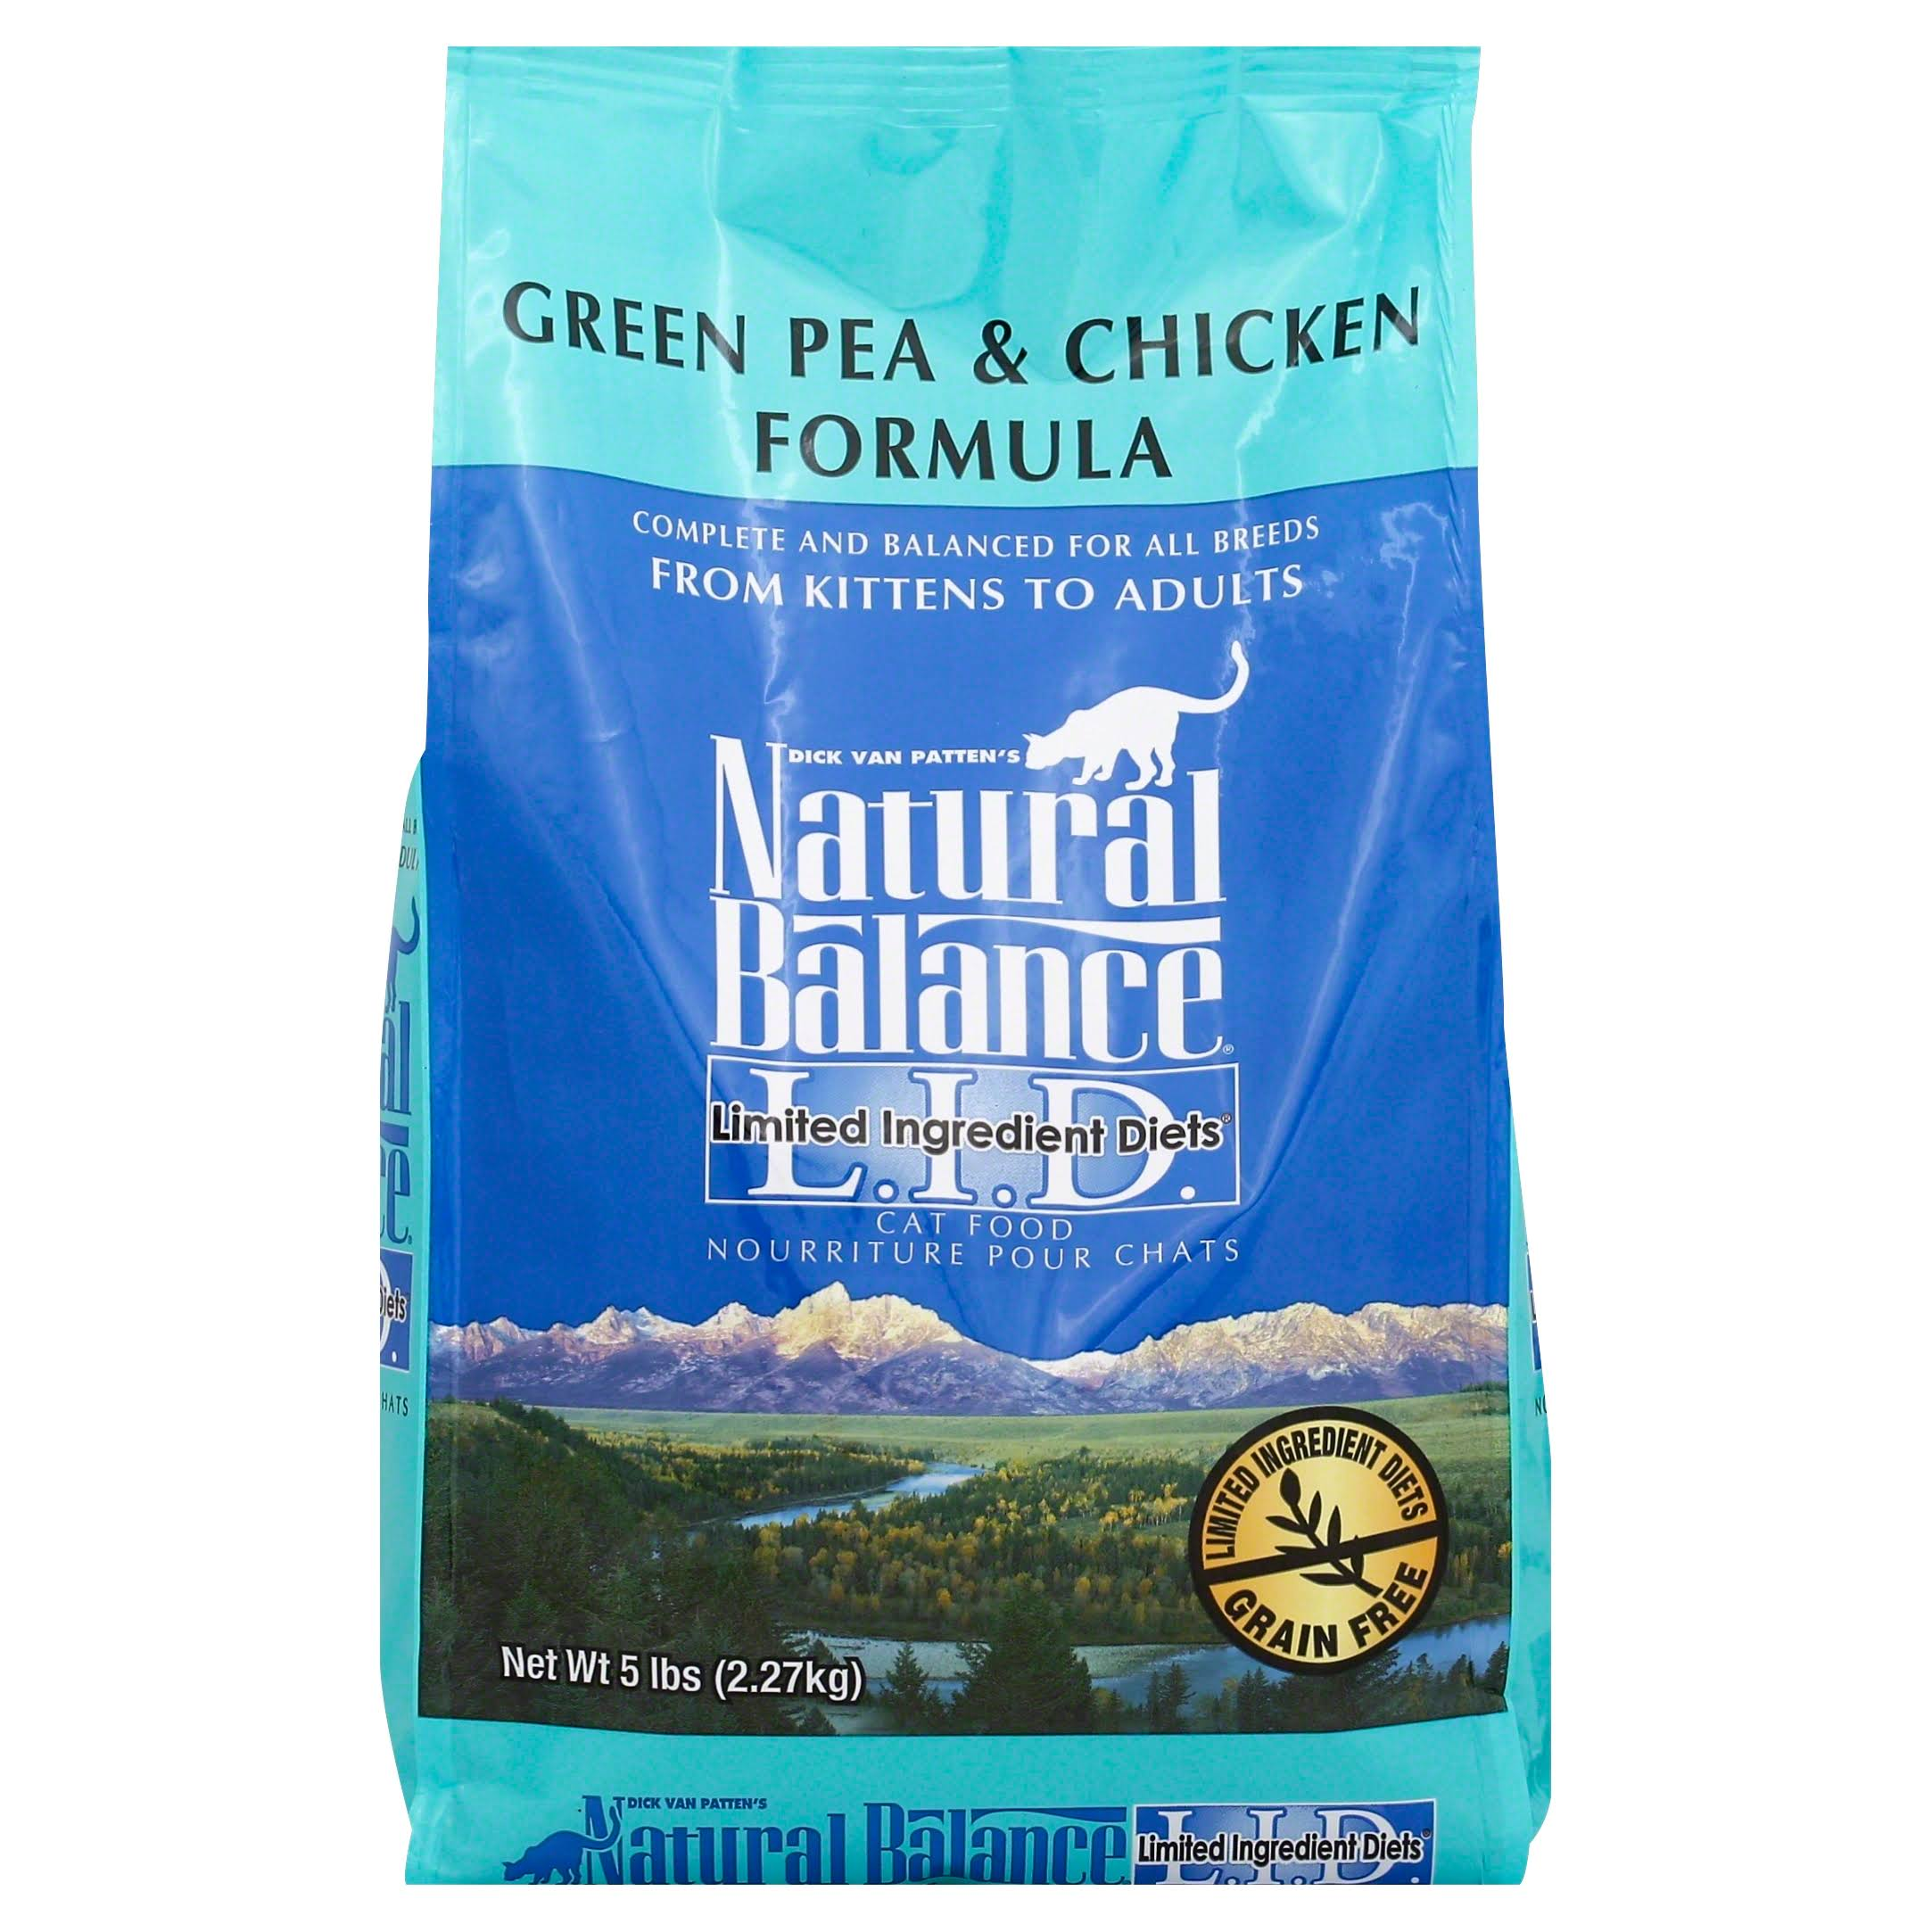 Natural Balance Dry Cat Food - Green Pea & Chicken, 5lb